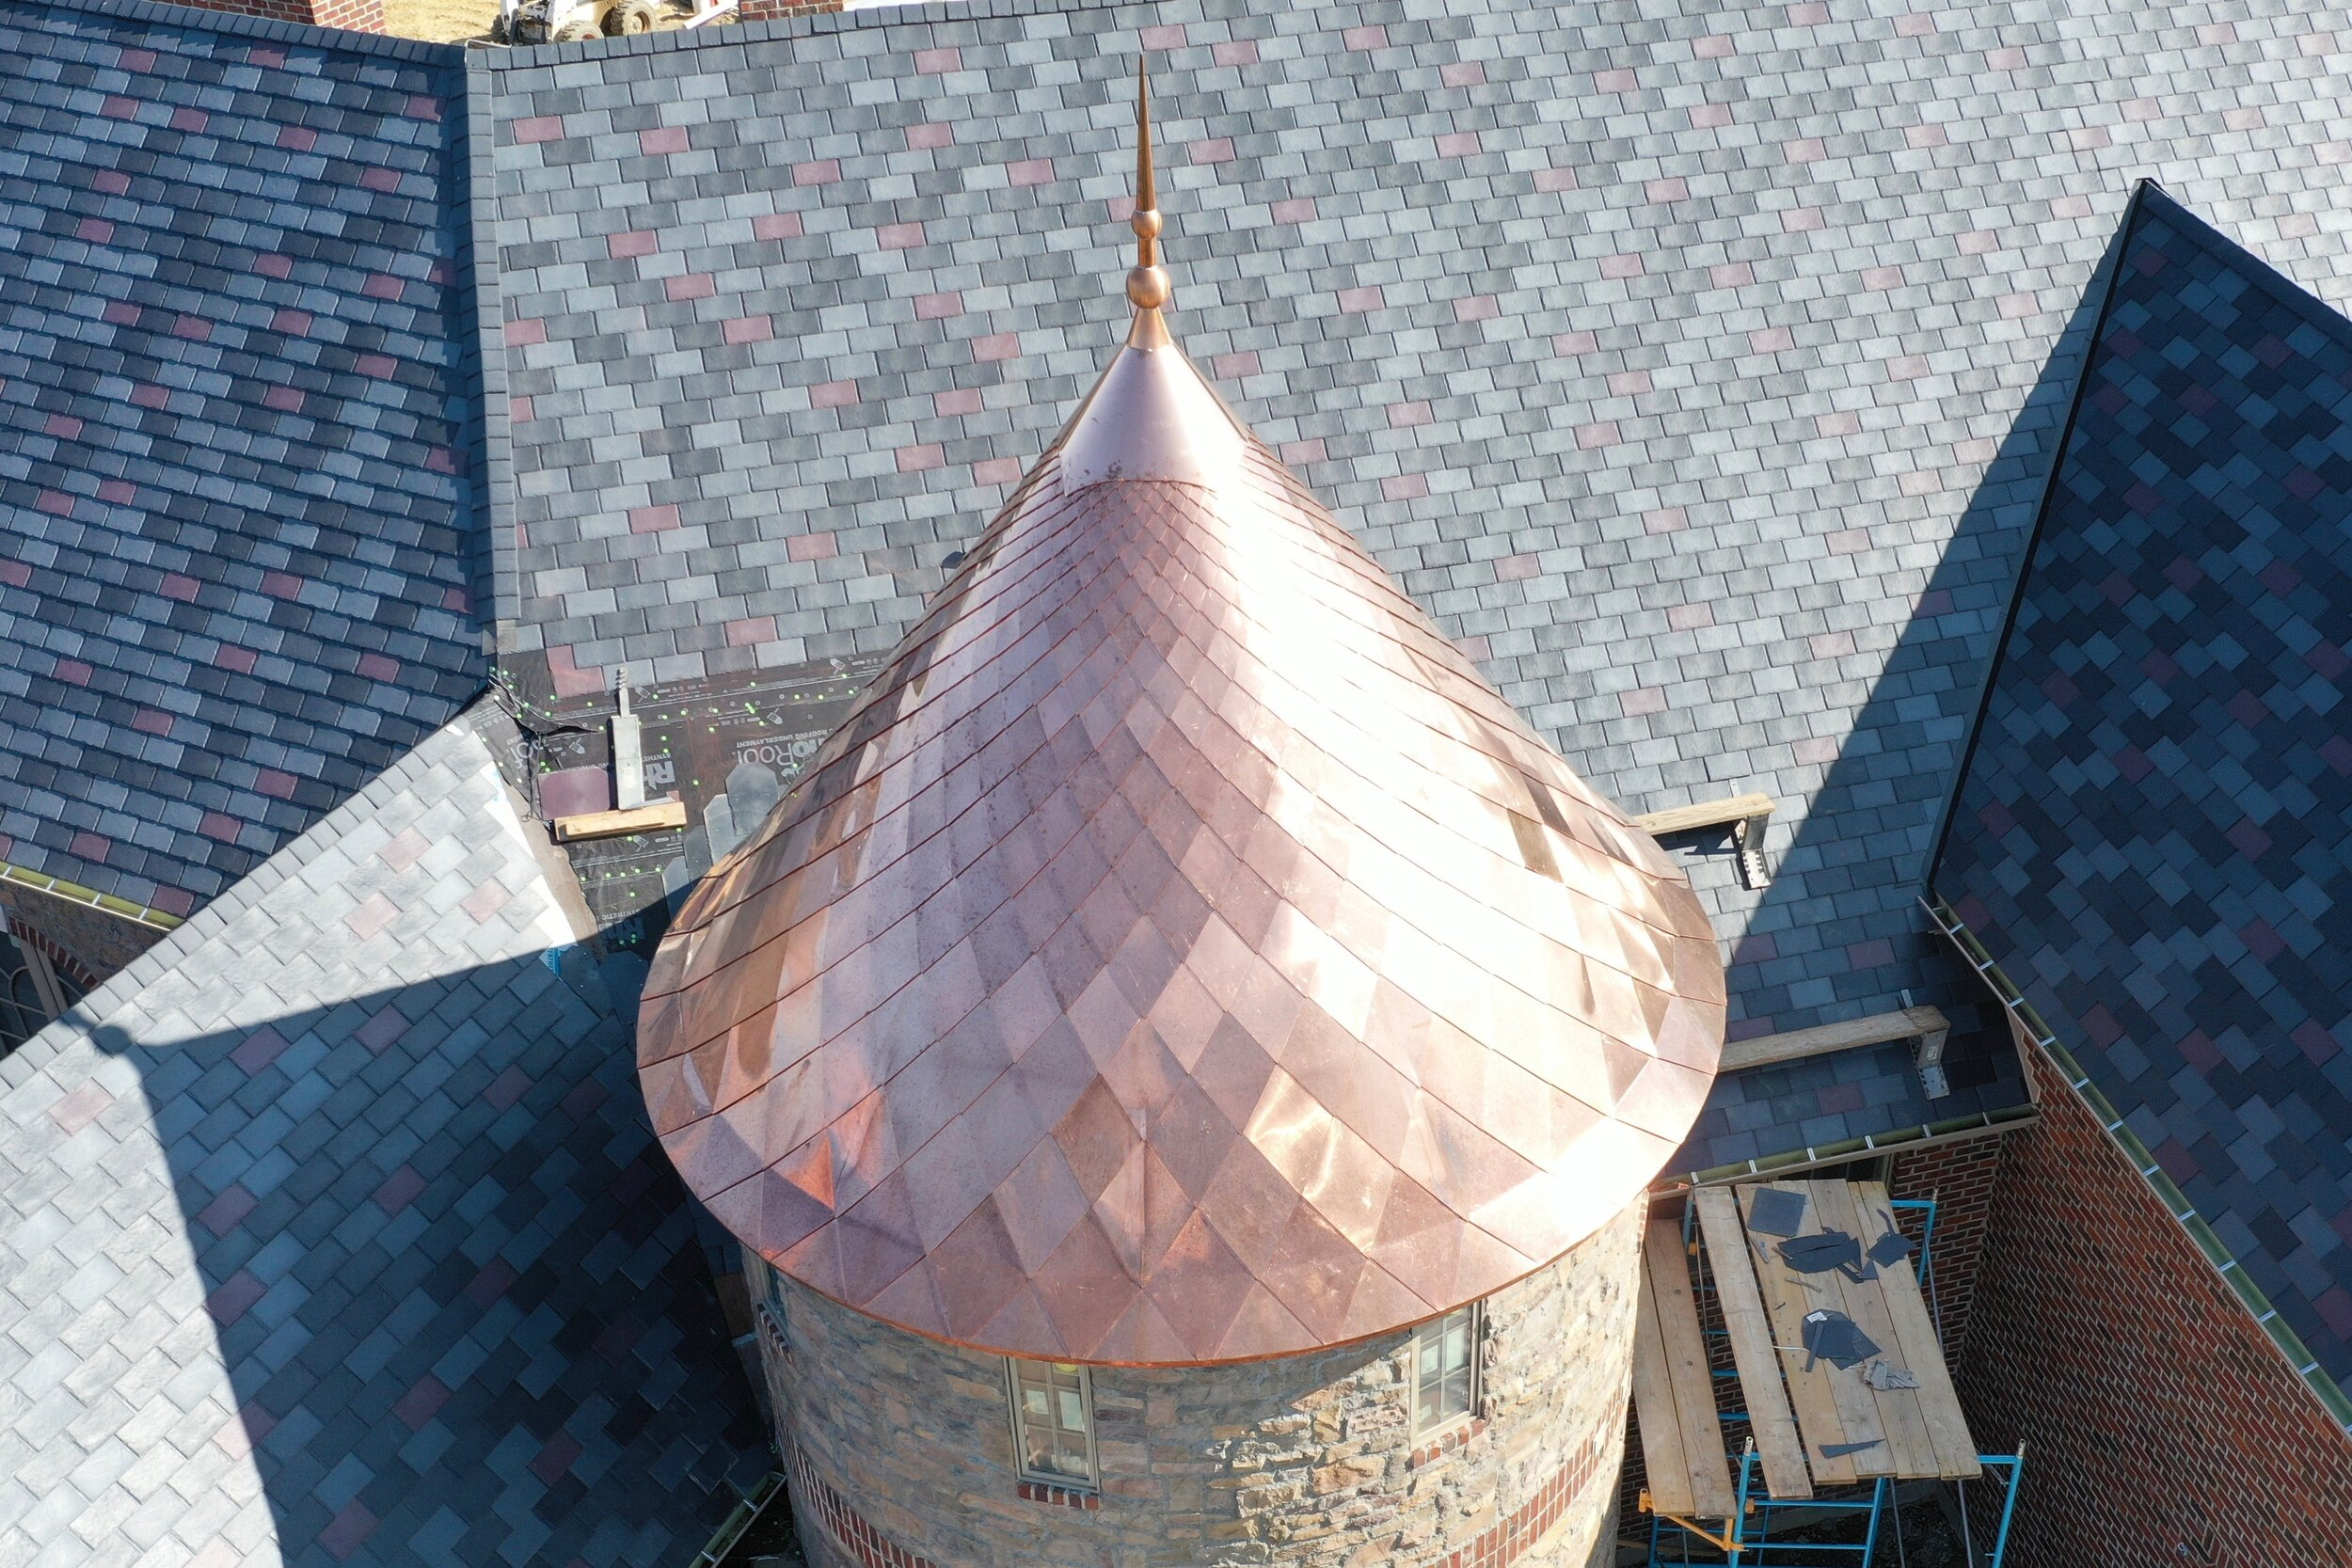 Copper, when installed properly, will last for centuries.